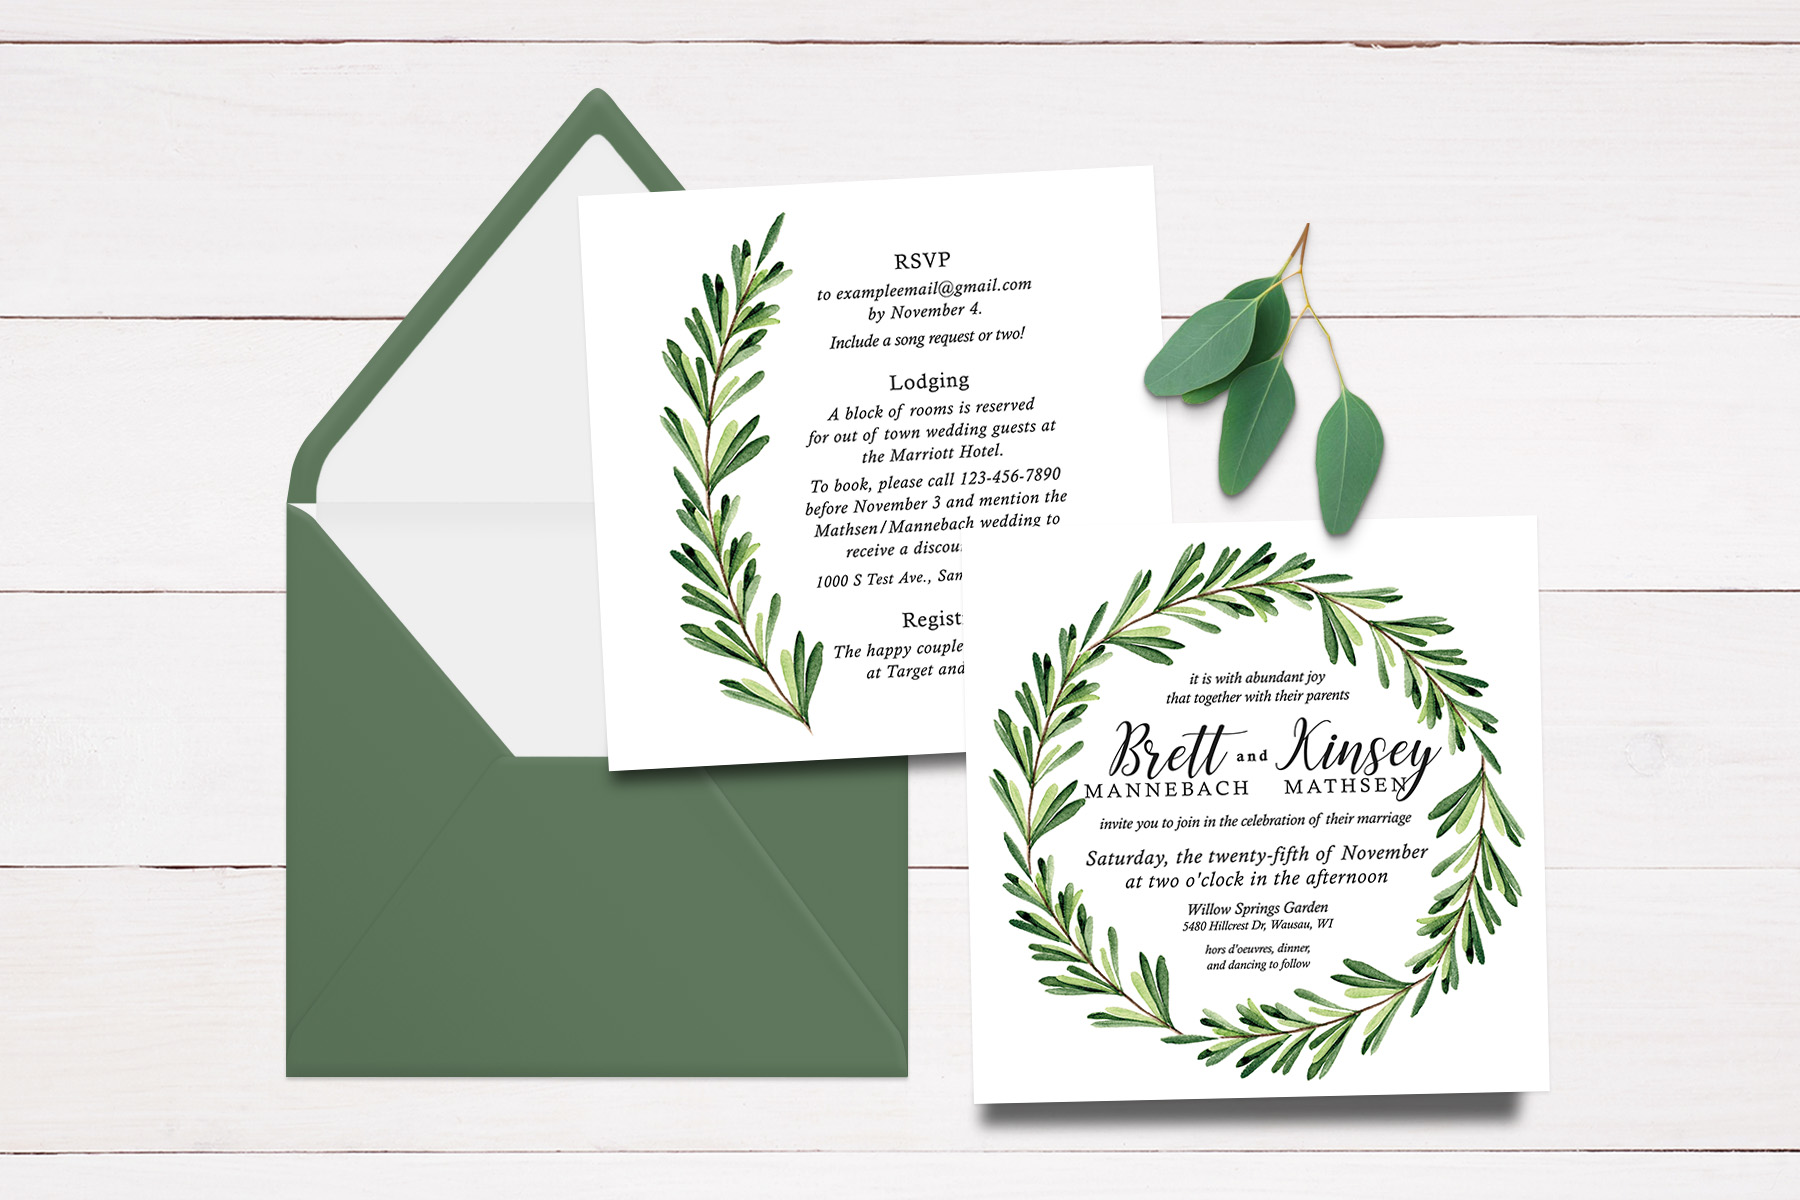 Mathsen_KinseyBrettWeddingInvitation_Mockup2.jpg